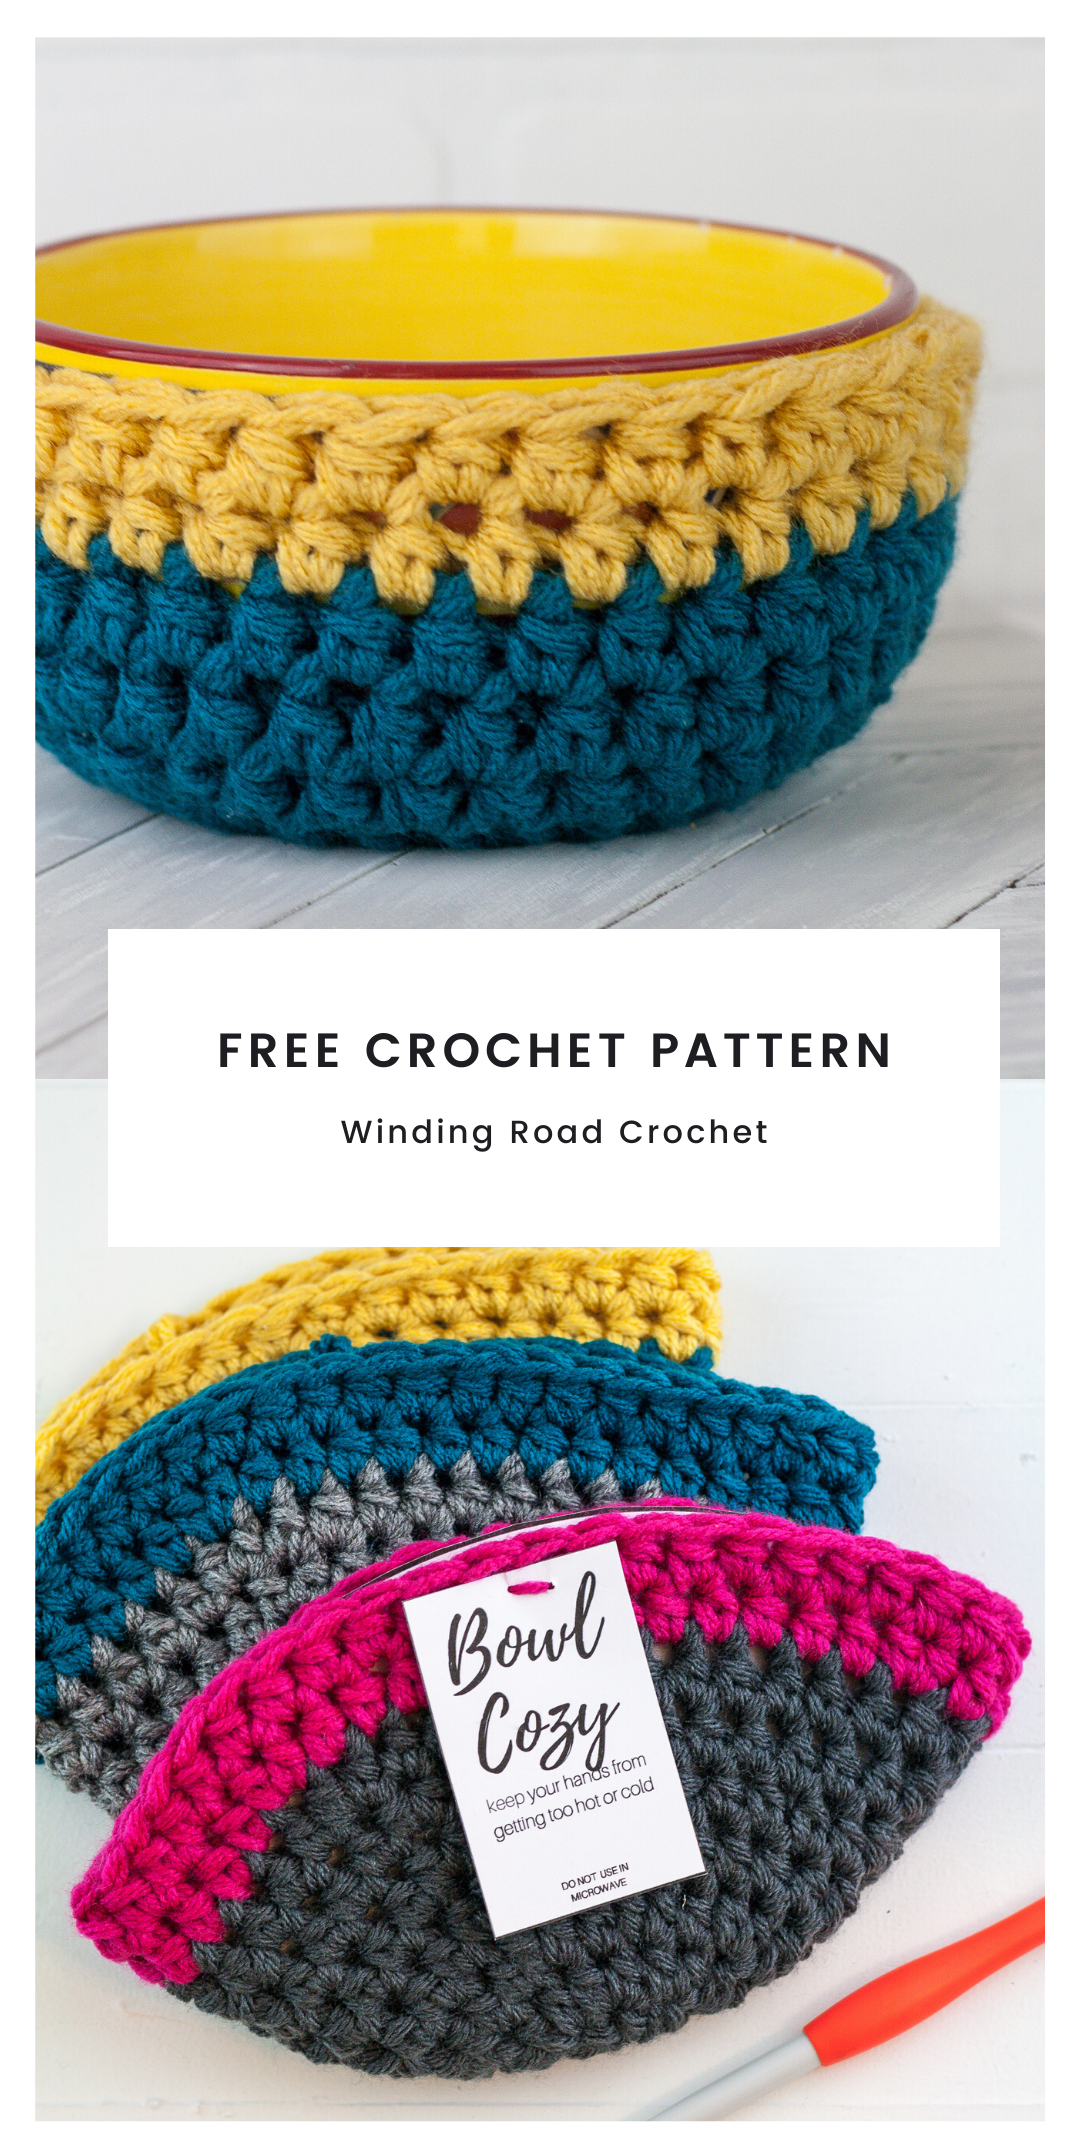 How to Crochet Bowl Cozy Free Pattern